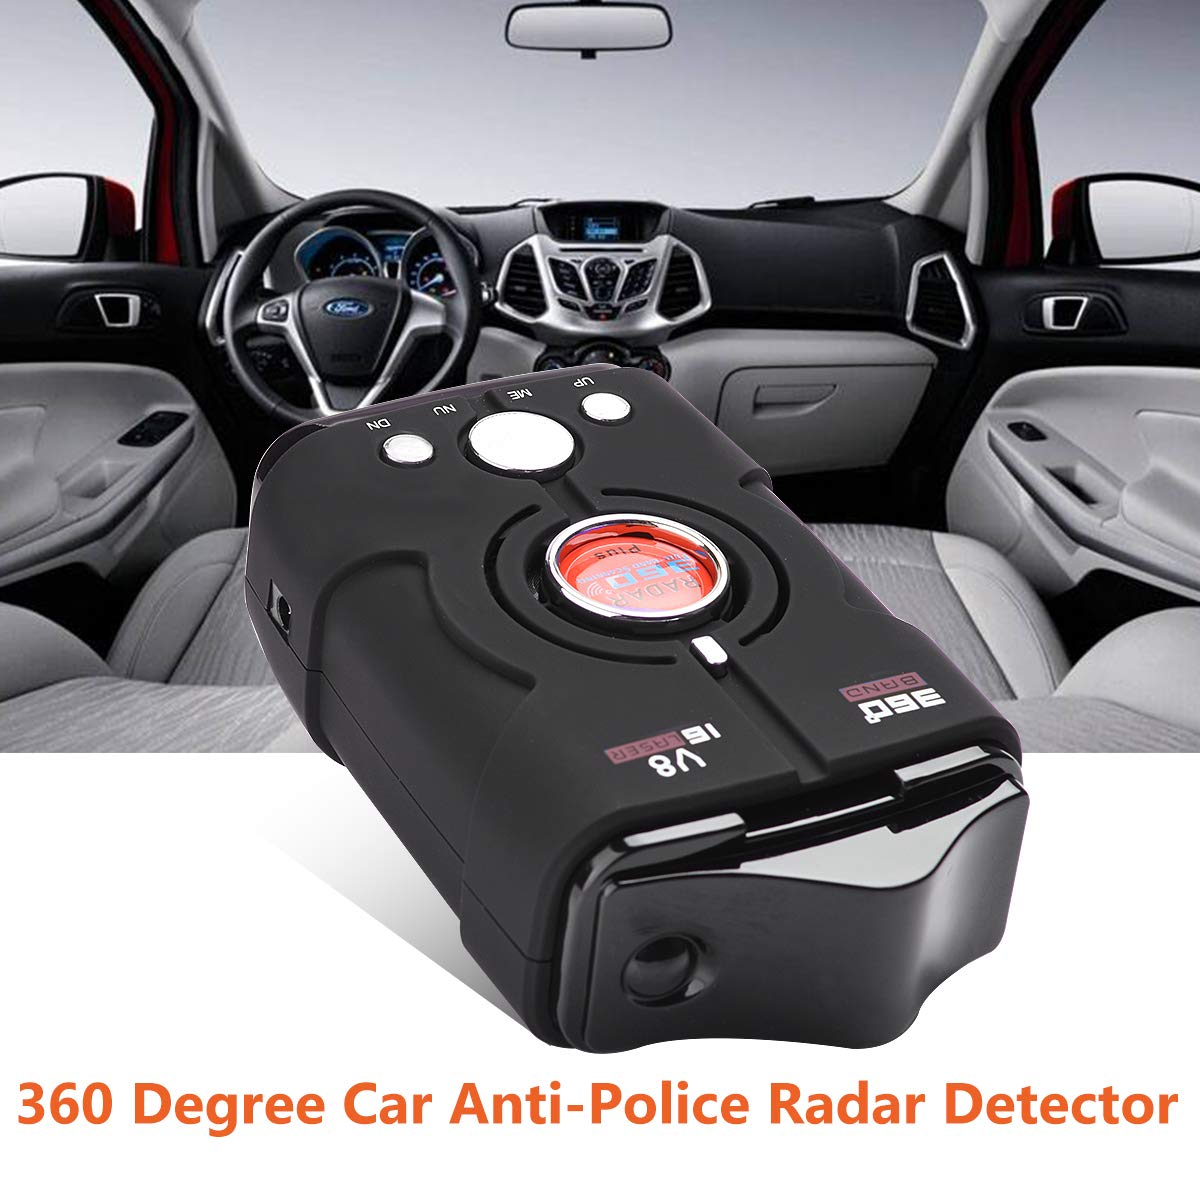 Amazon.com: Laser Radar Detector with 360 Degree Detection Voice Alert and Speed Alarm System, City/Highway Mode: Electronics